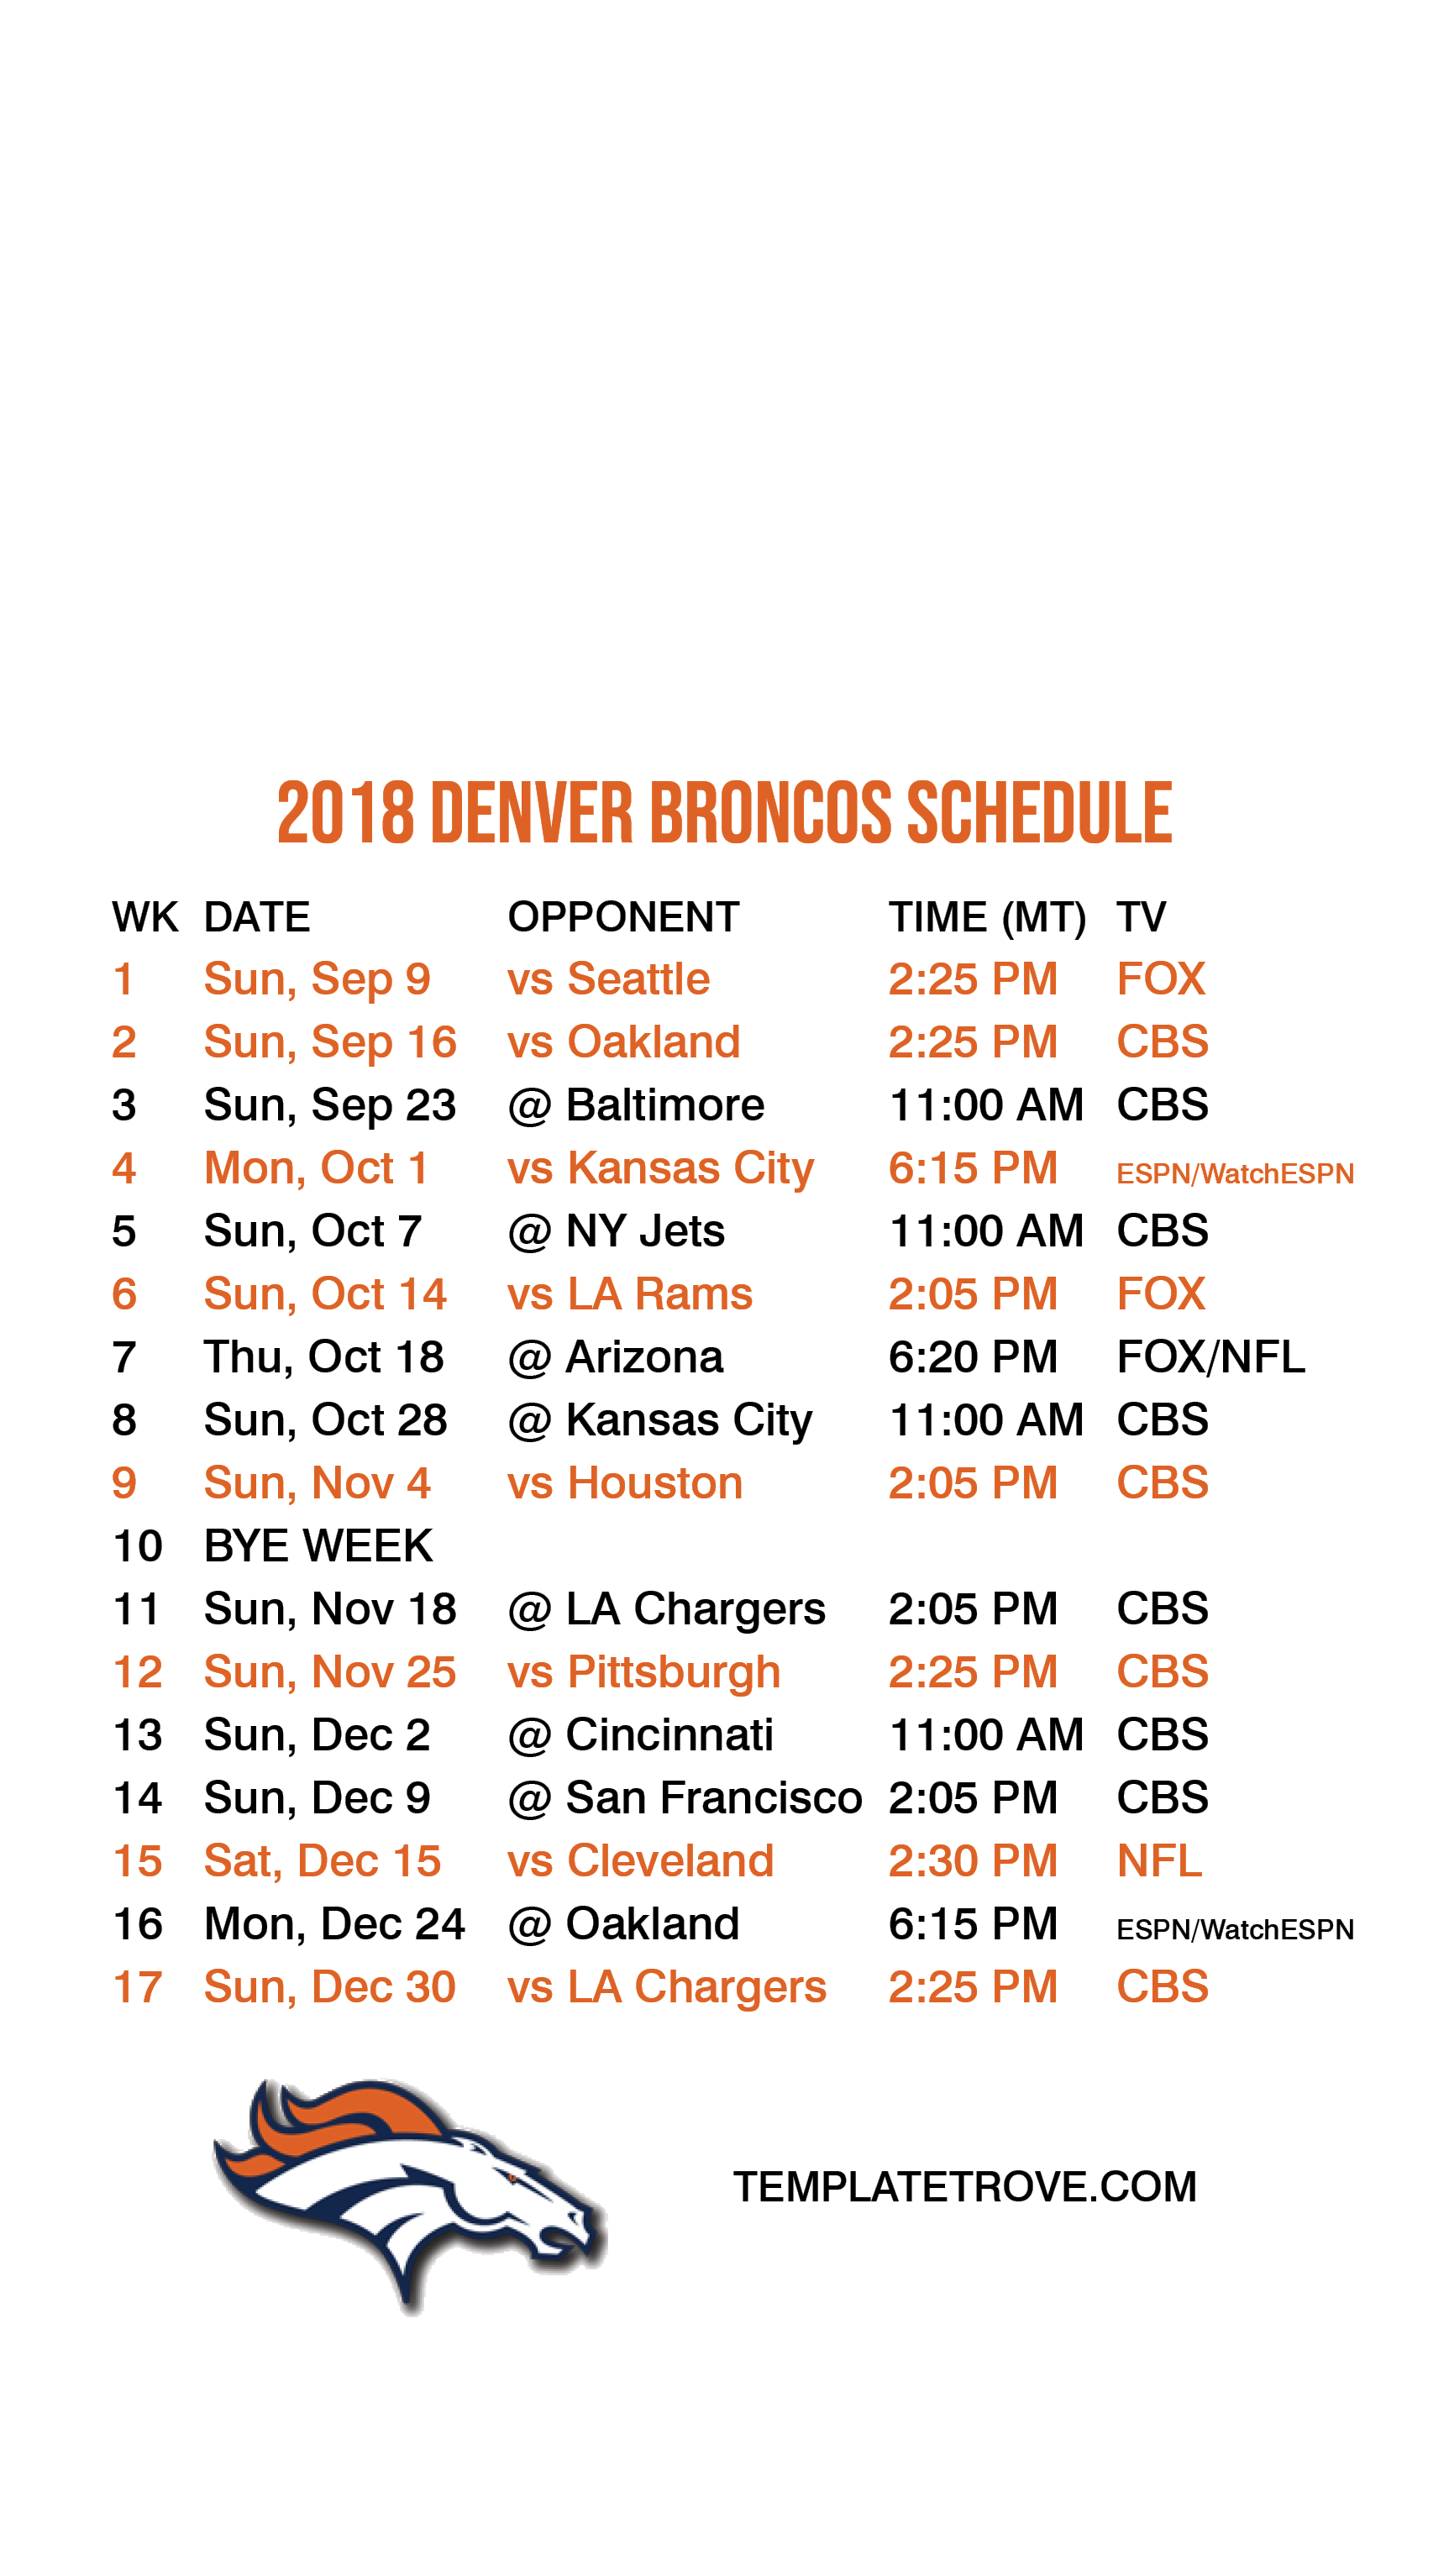 picture regarding Denver Broncos Printable Schedule titled 2018-2019 Denver Broncos Lock Show Agenda for apple iphone 6-7